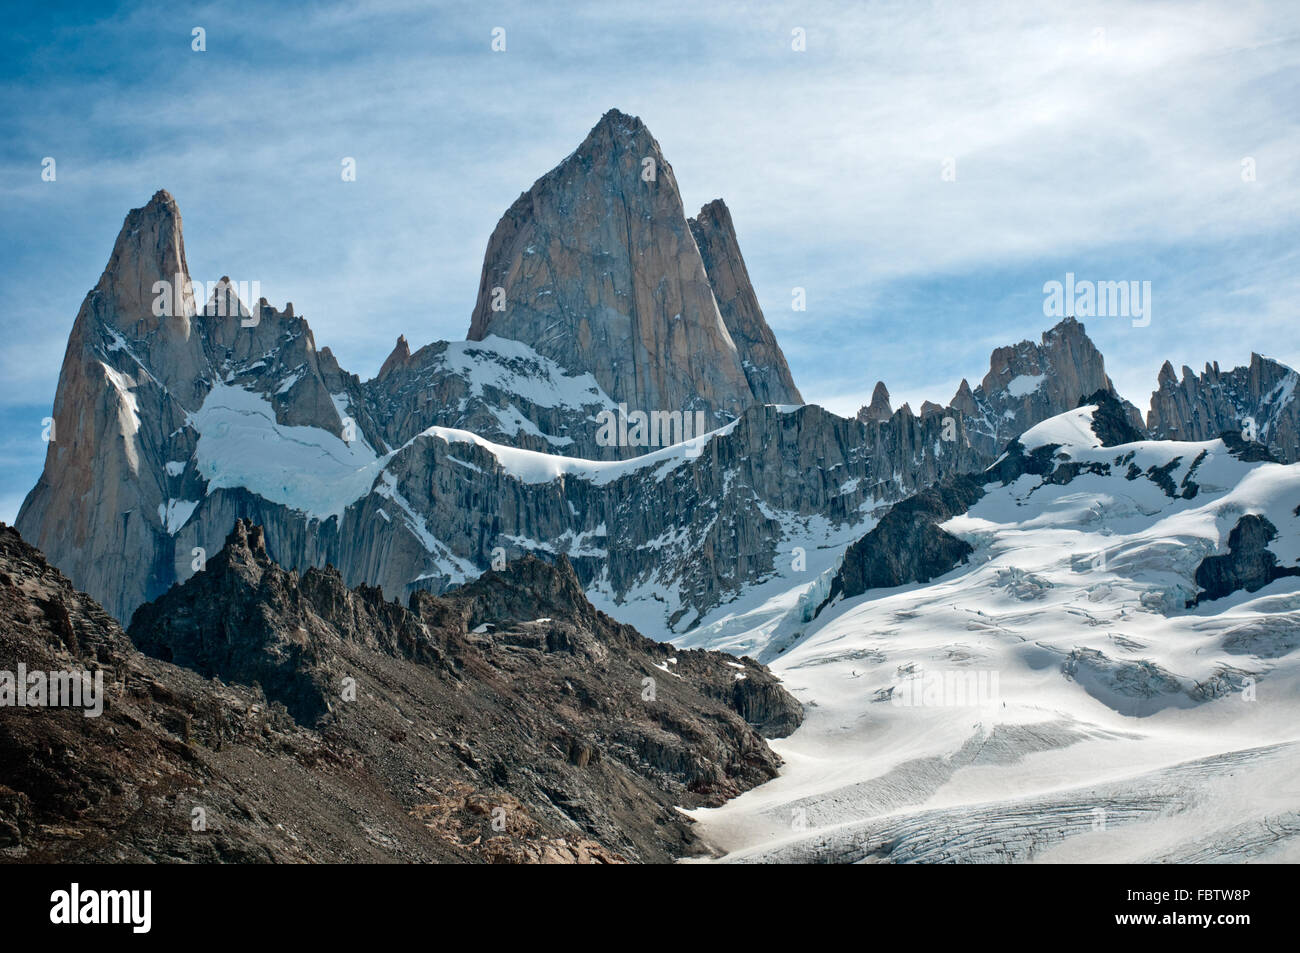 Fitz Roy mountain and Laguna de los Tres, Patagonia, Argentina - Stock Image